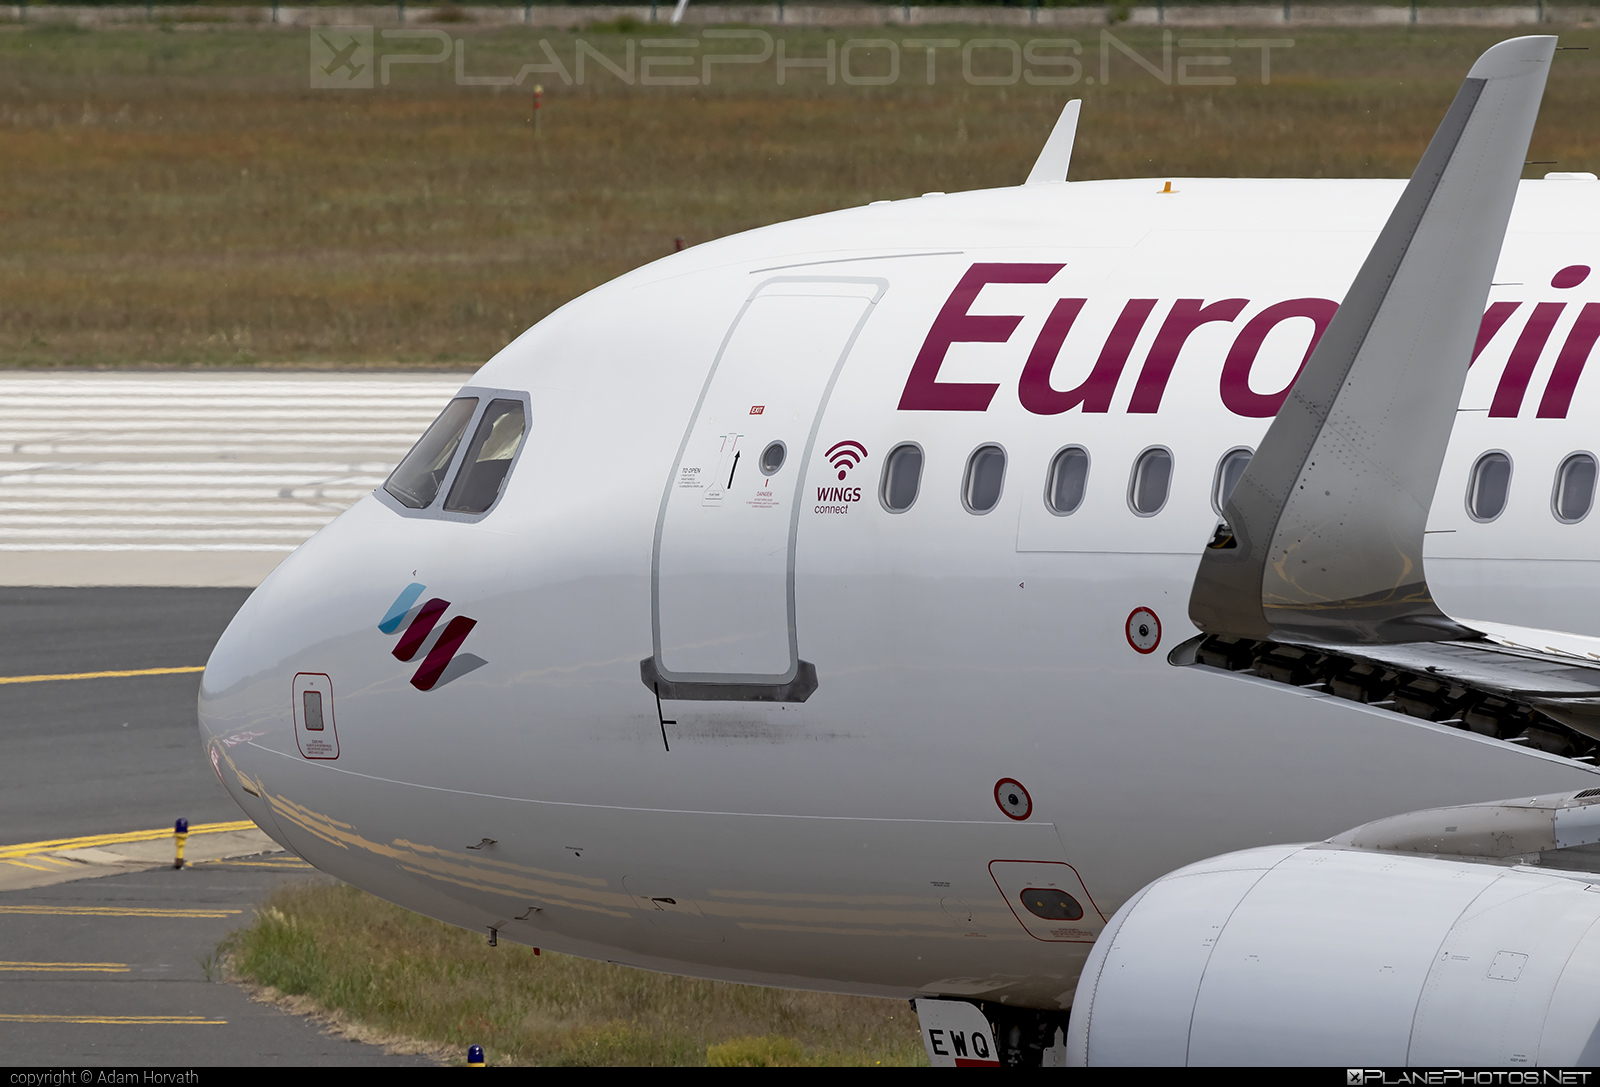 Airbus A320-214 - D-AEWQ operated by Eurowings #a320 #a320family #airbus #airbus320 #eurowings